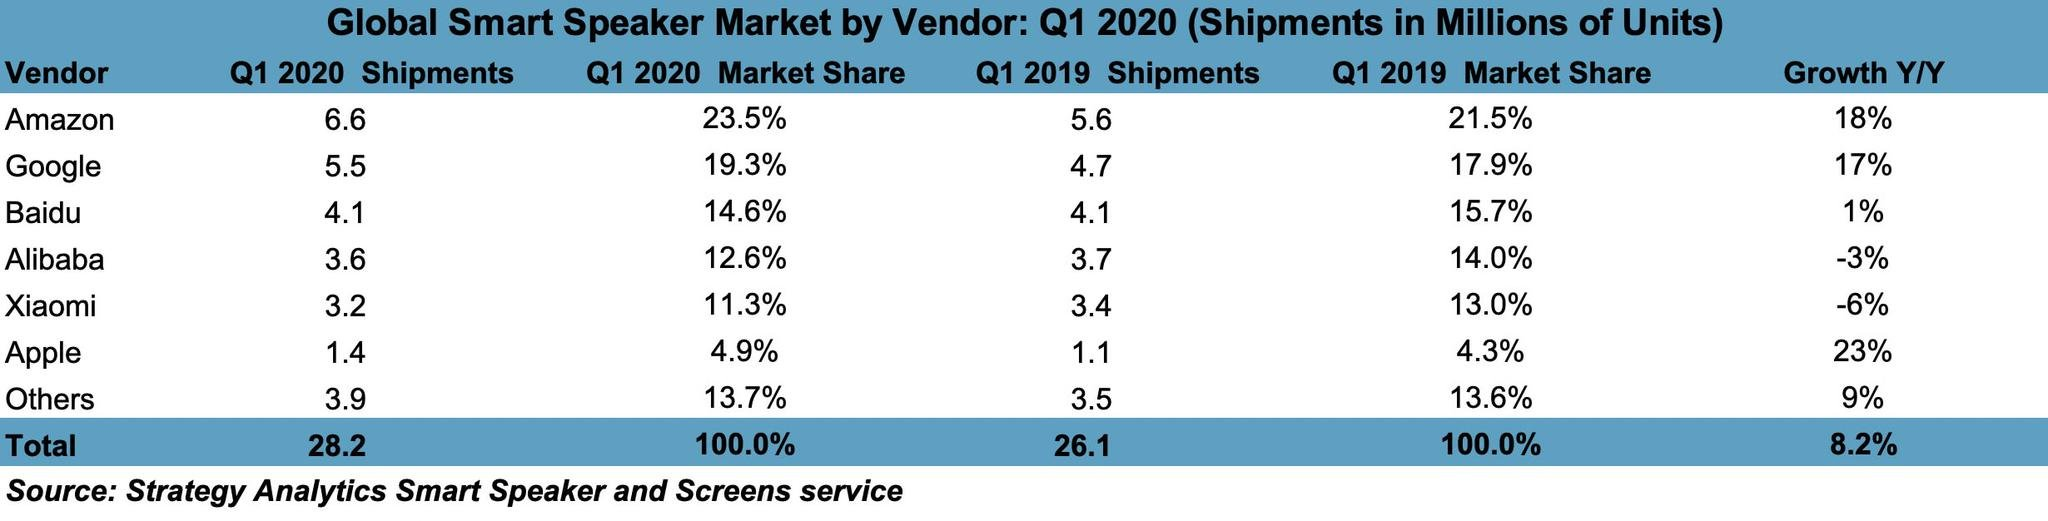 global smart speaker shipments